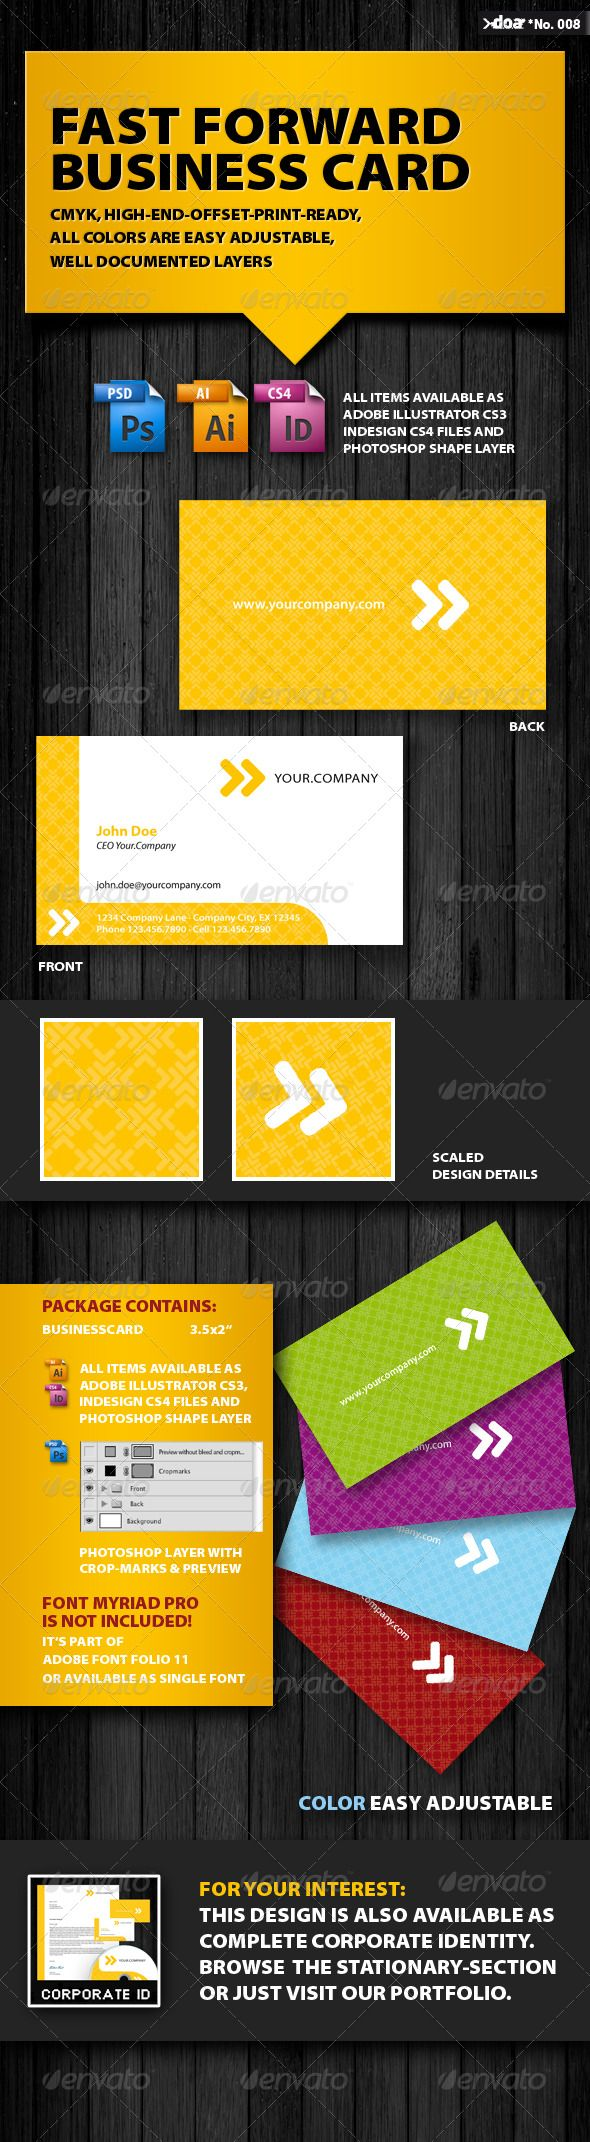 Fast forward business card offset printing business cards and fast forward business card reheart Image collections